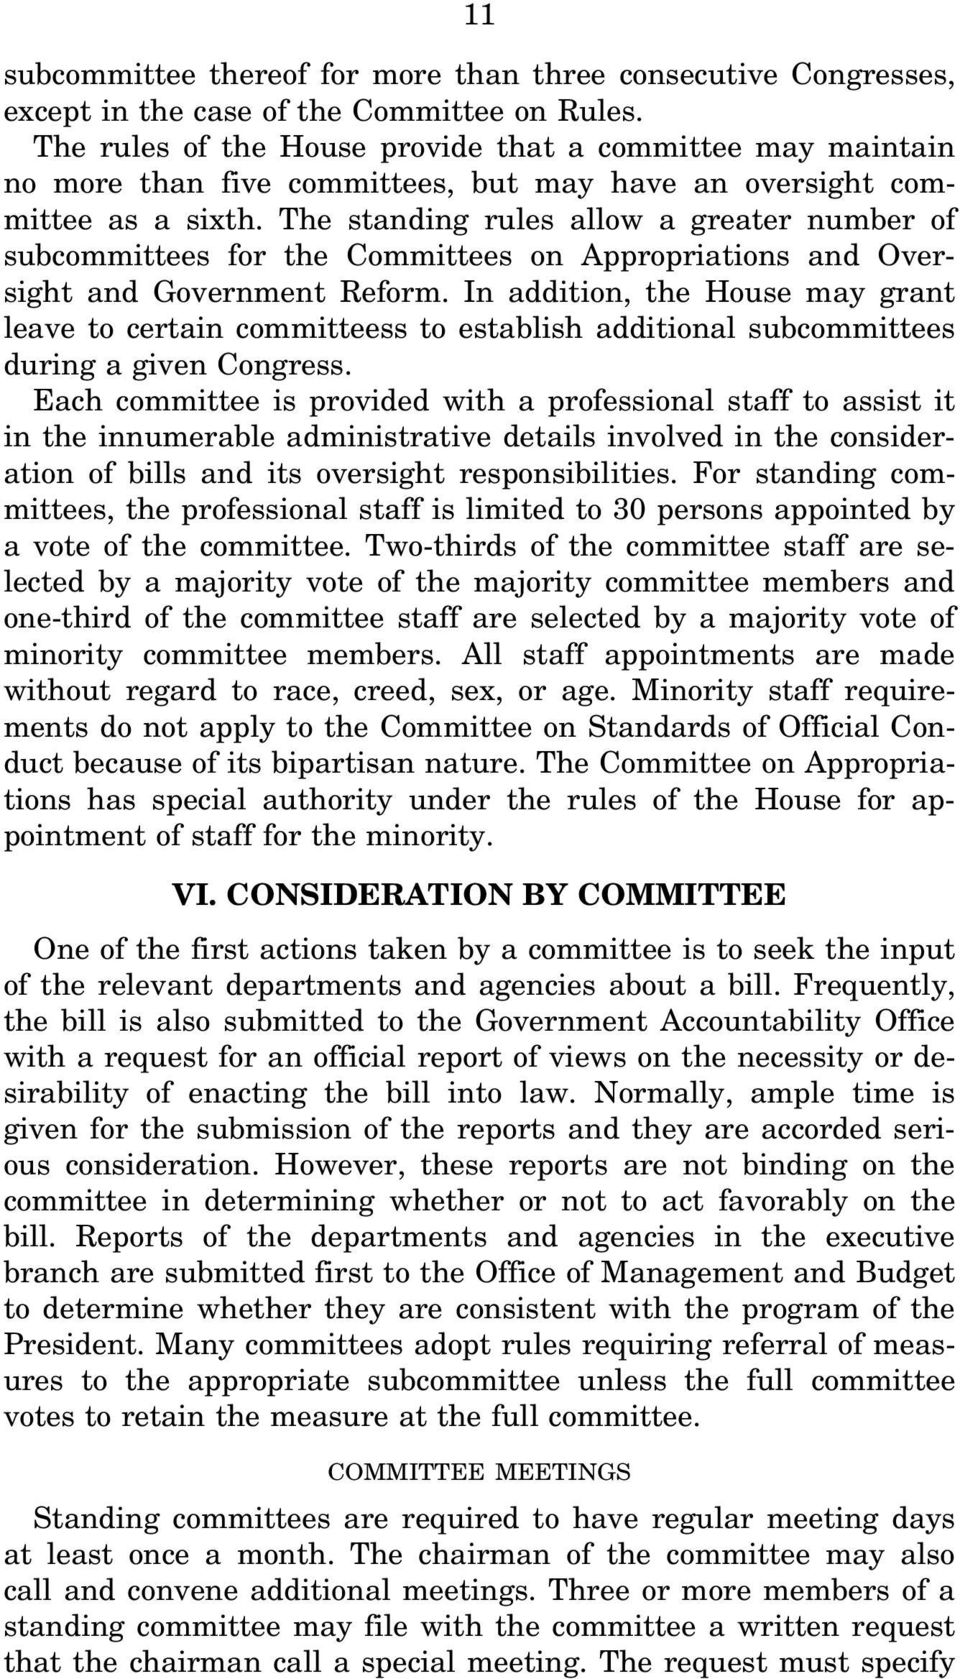 The standing rules allow a greater number of subcommittees for the Committees on Appropriations and Oversight and Government Reform.